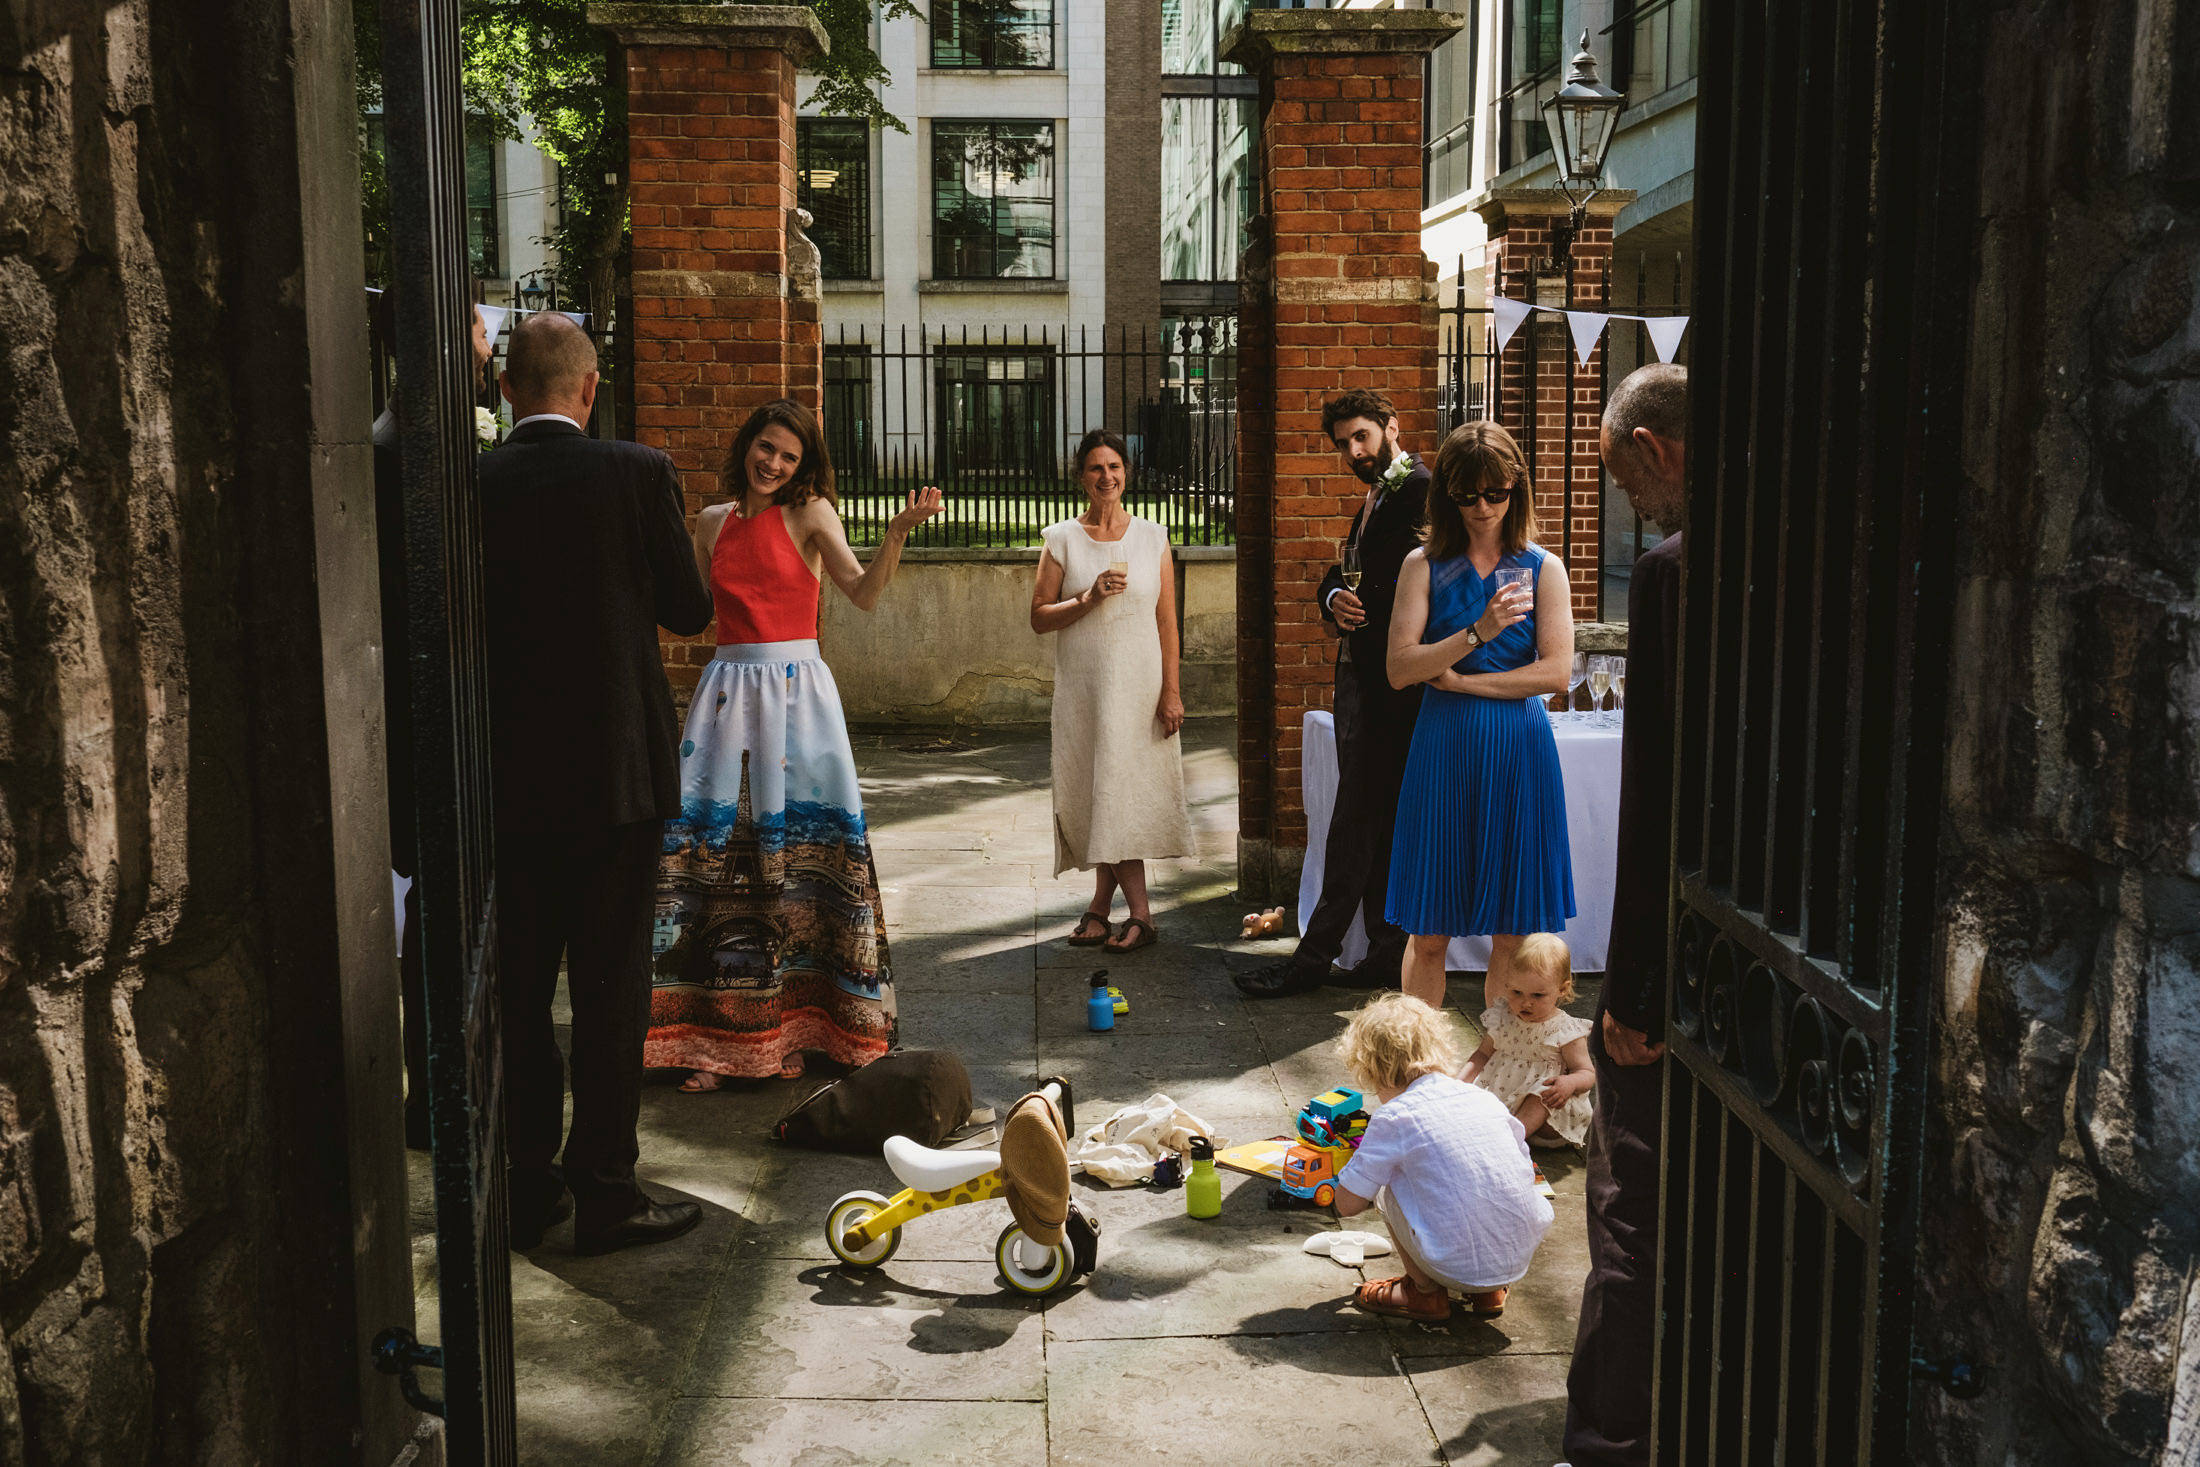 Layered street style wedding photograph of guests gathered for a micro wedding reception framed by the gates of Greyfriar's Passage, London